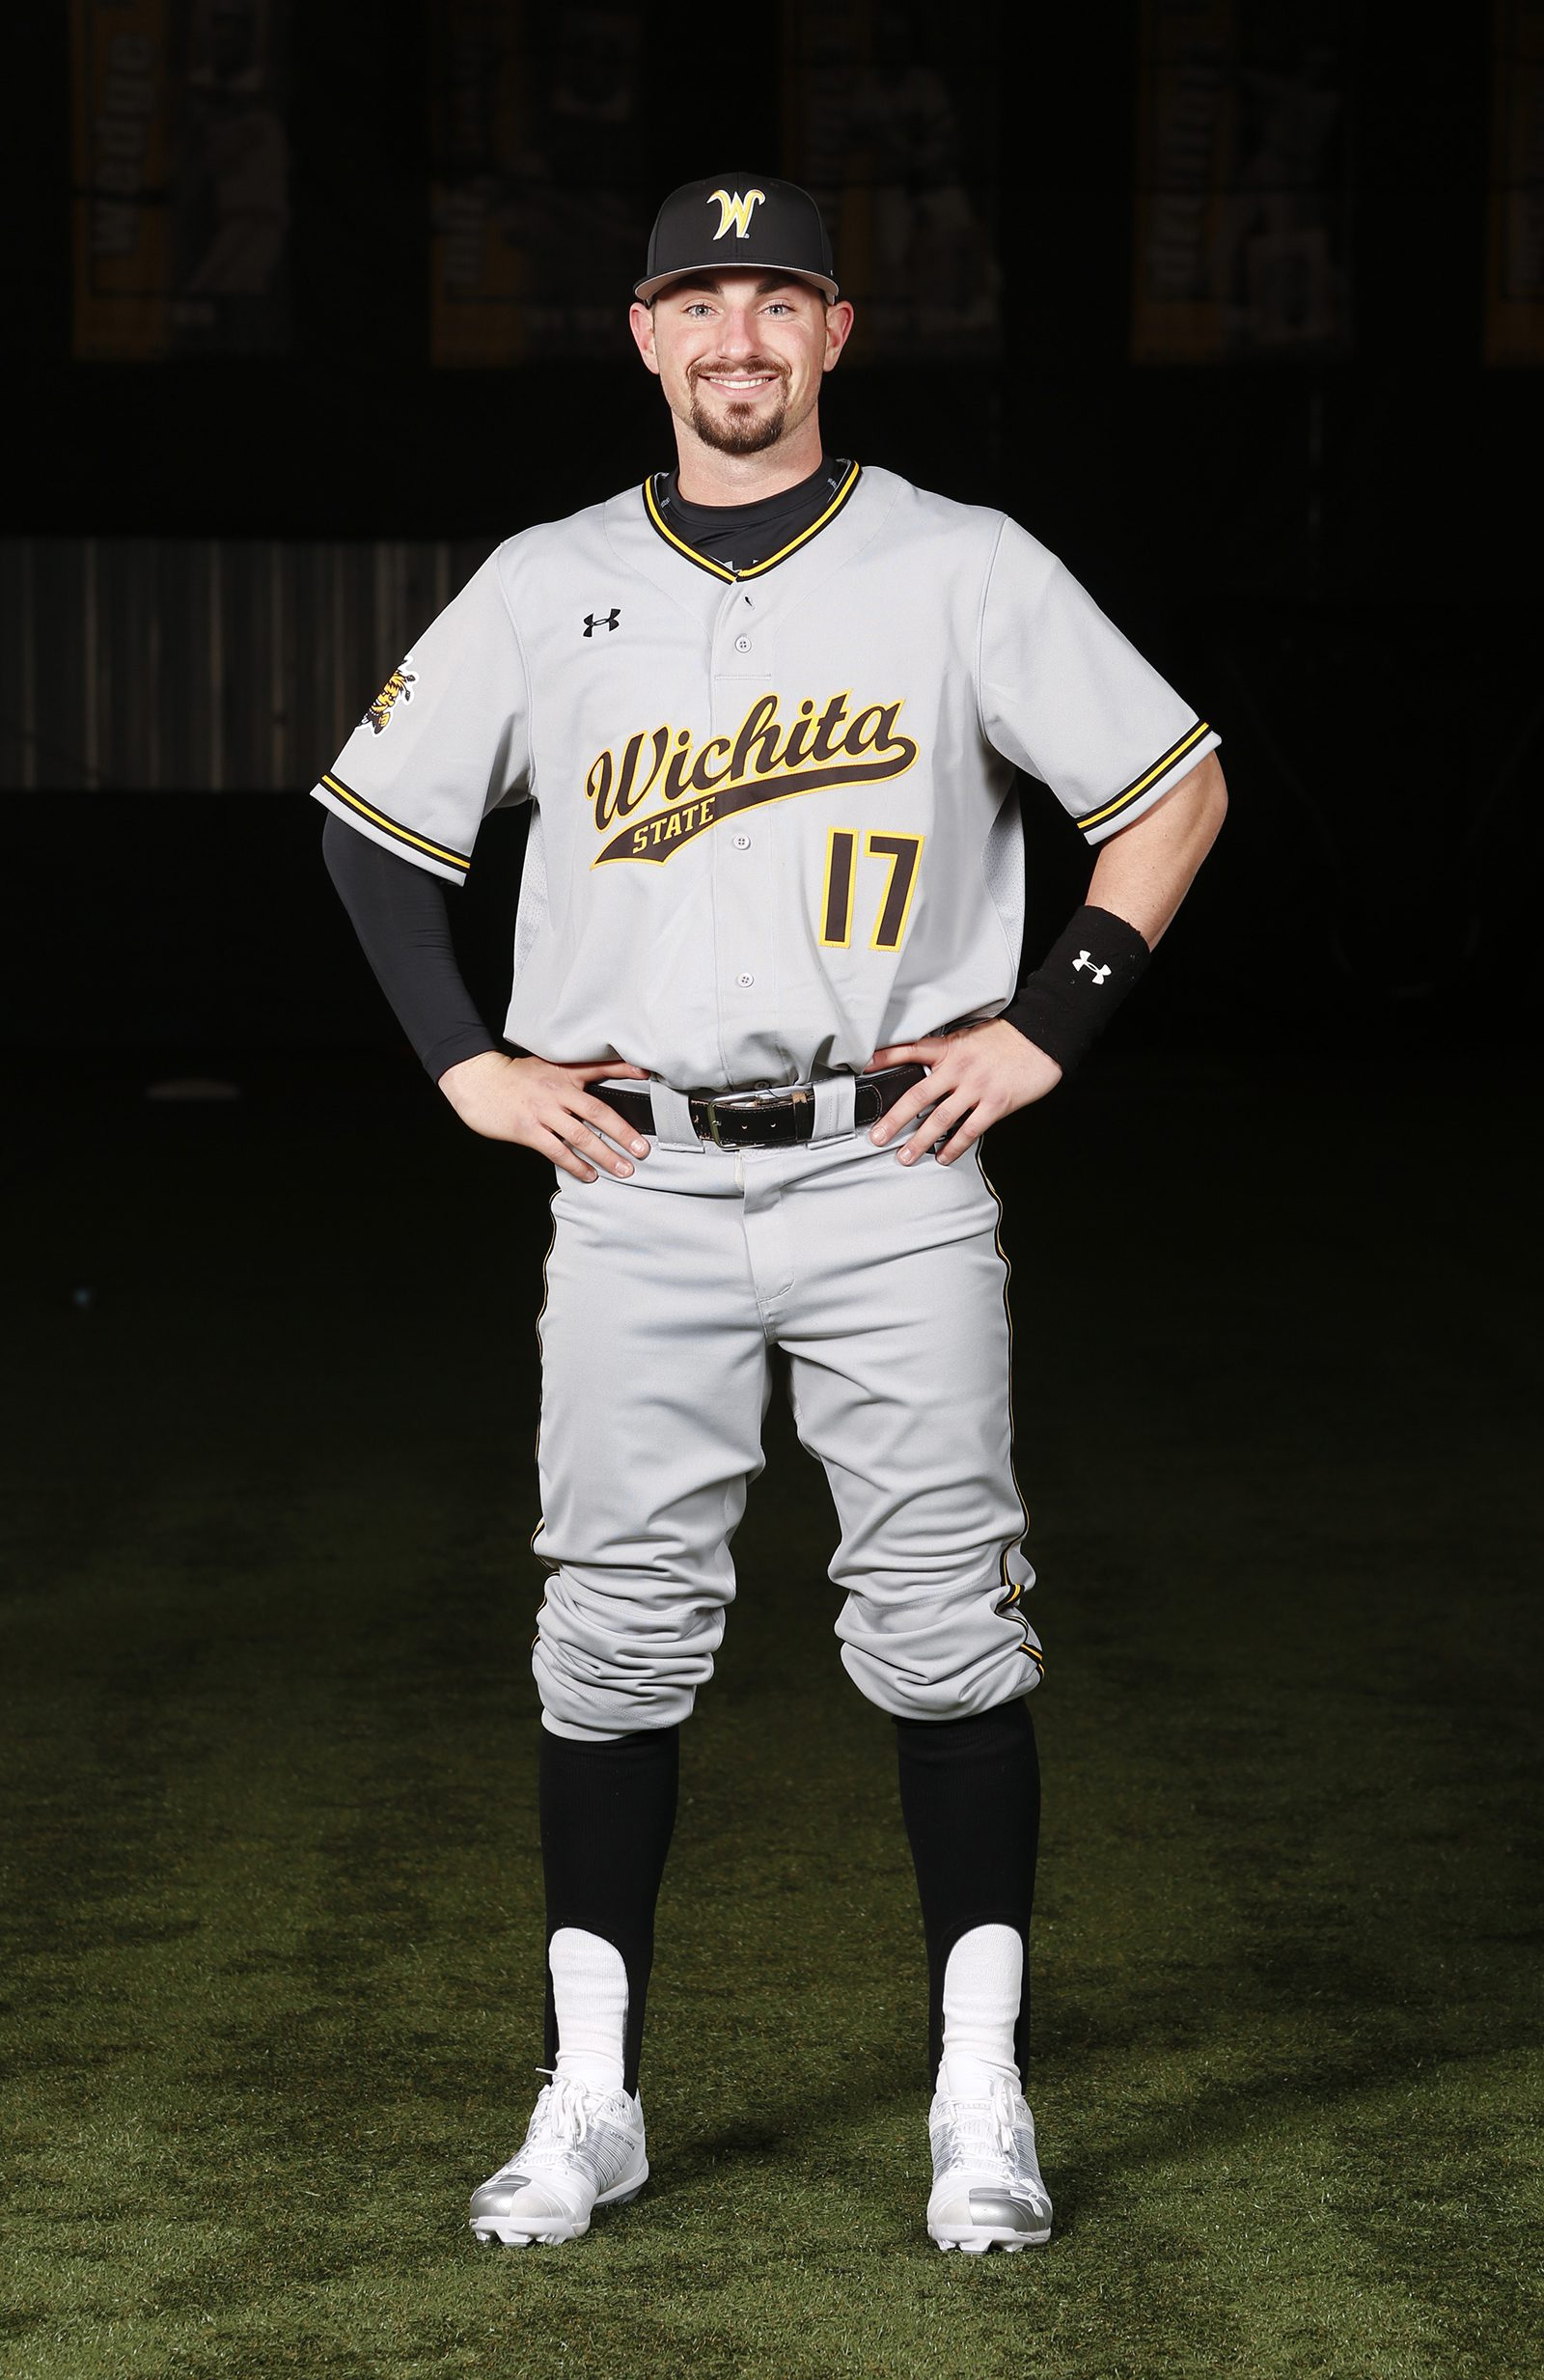 07e8223a0 The gray with stirrups is a classic look (we are really into the gray unis  this spring) and the bold gold top. Which one do you like better?